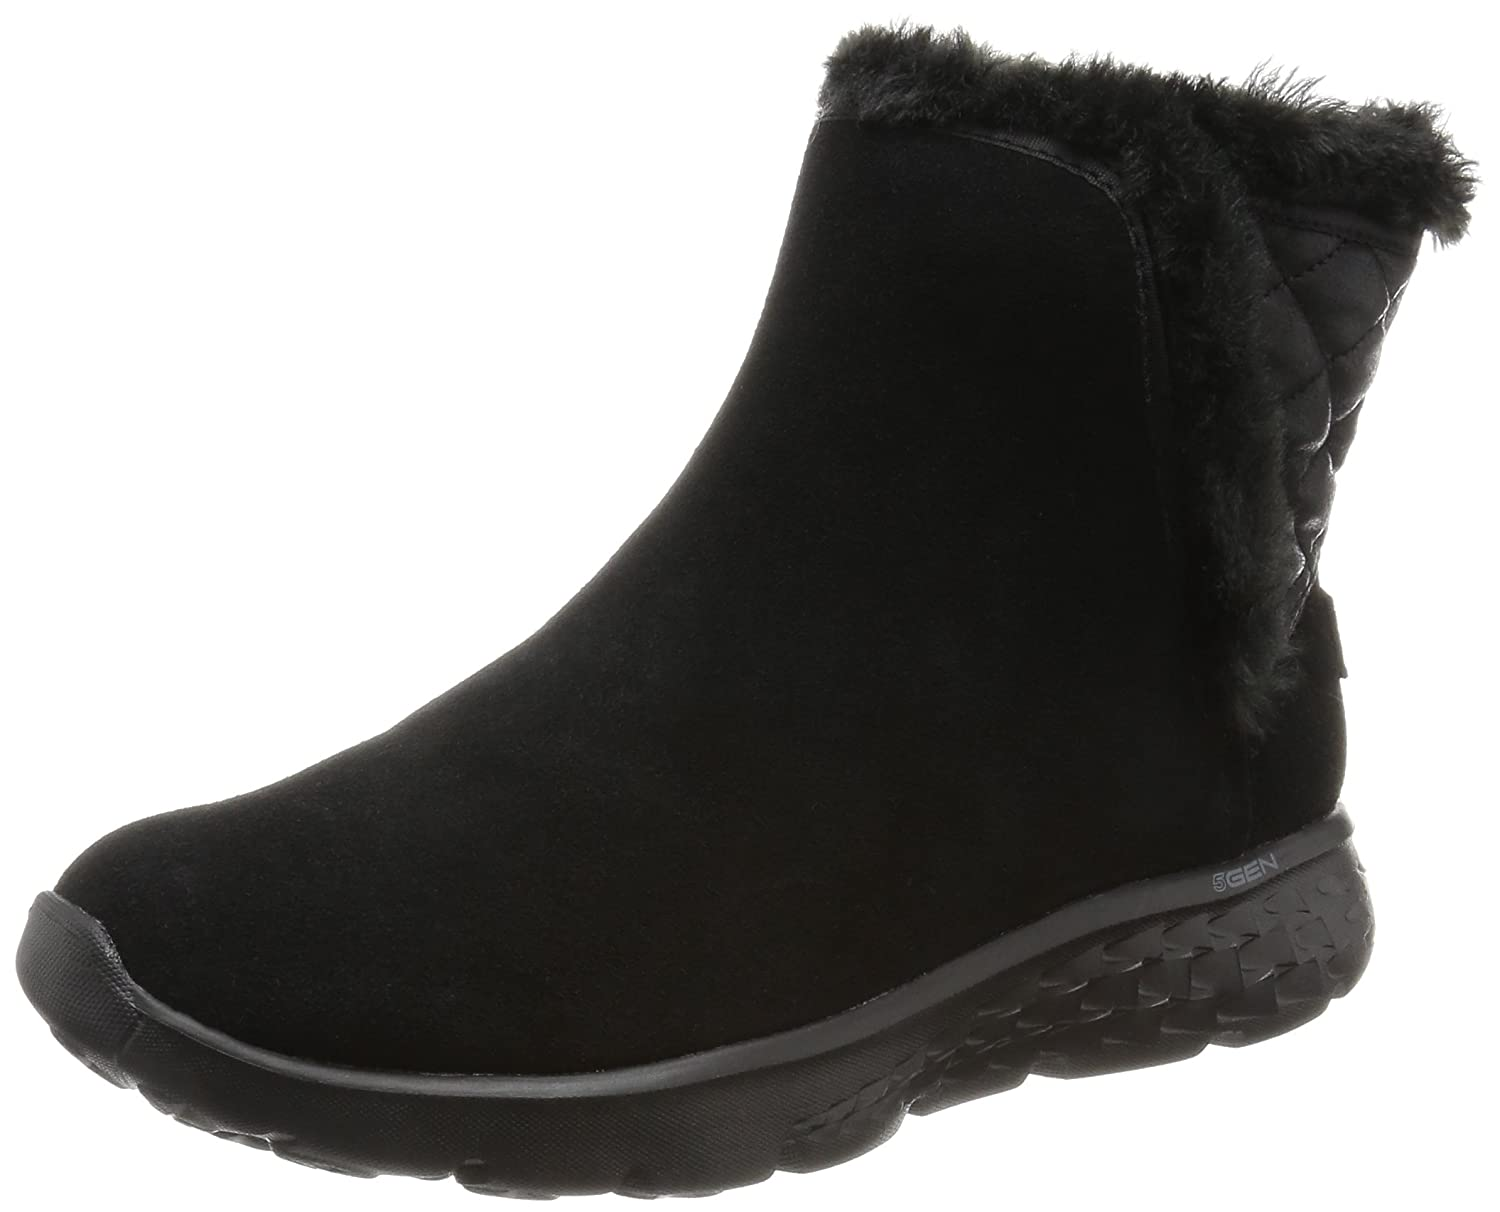 Skechers Damen on-The-Go 400 Cozies Kurzschaft Stiefel  39 EU|Schwarz (Bbk)